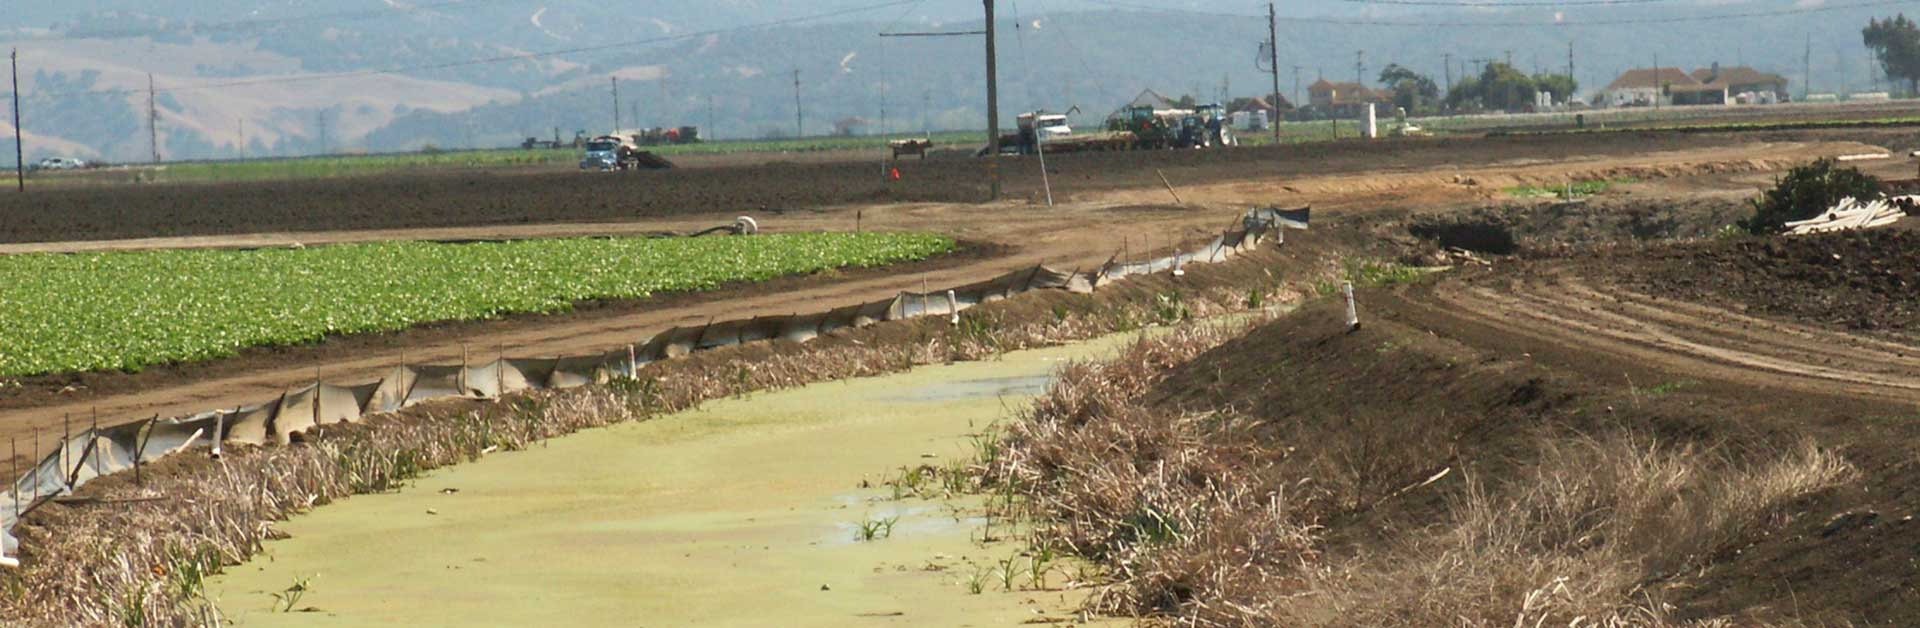 Agricultural pollution.